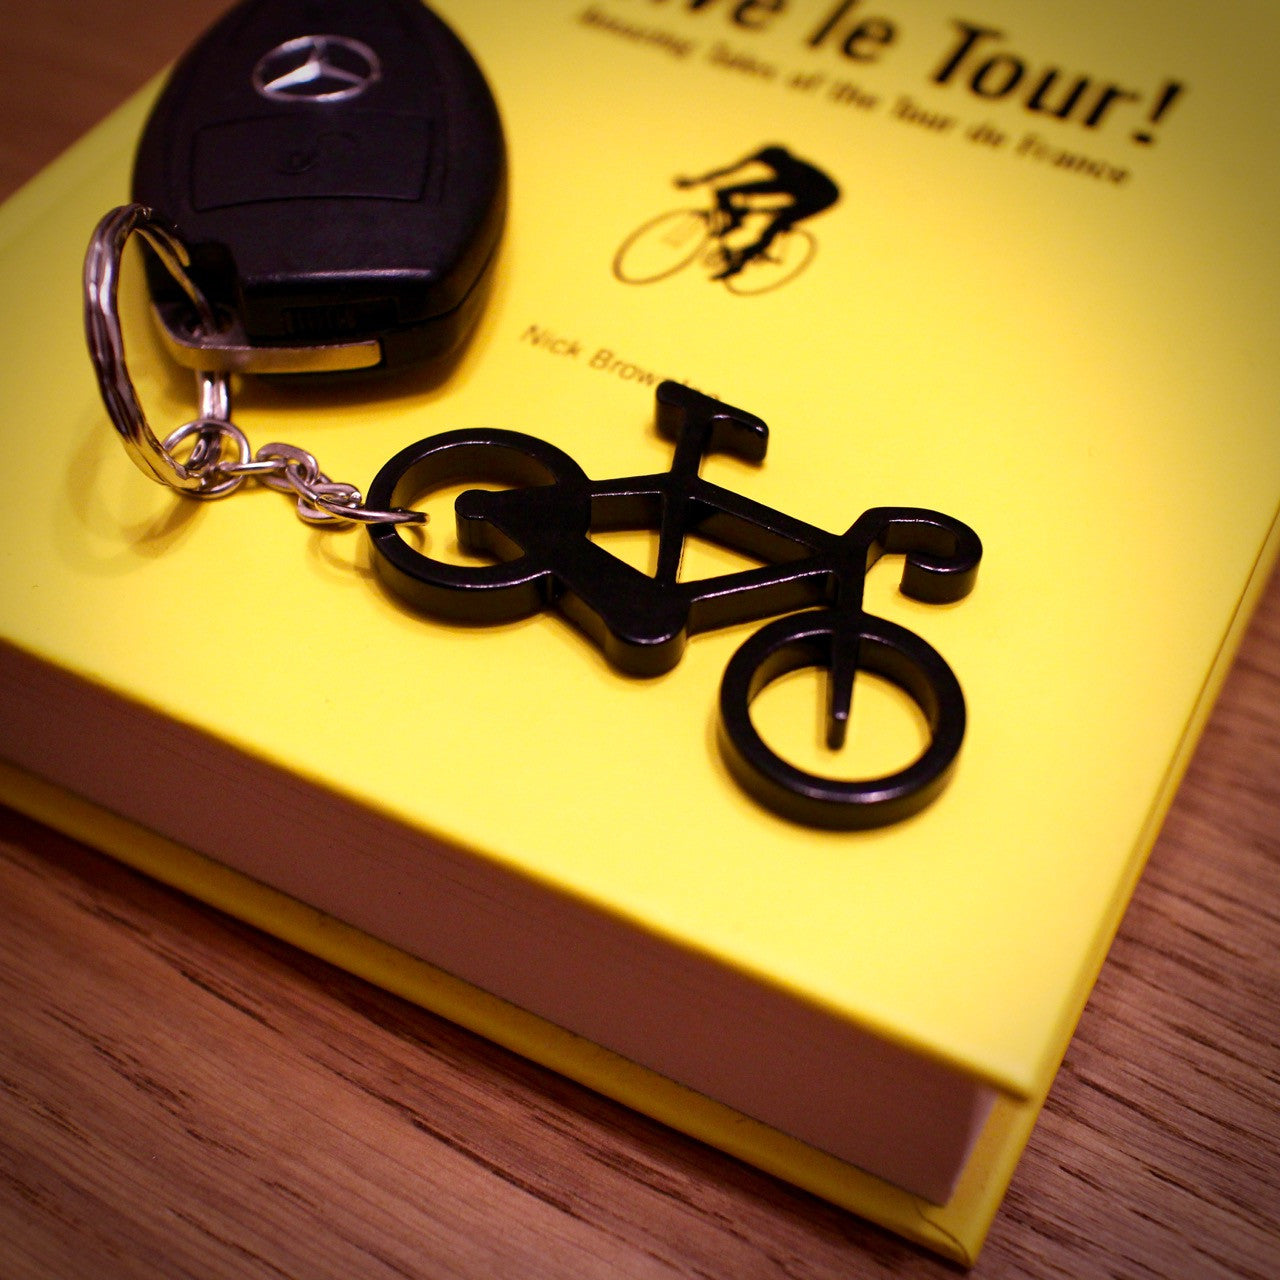 alloy anodised road bike keyring bottle opener elliebeanprints. Black Bedroom Furniture Sets. Home Design Ideas